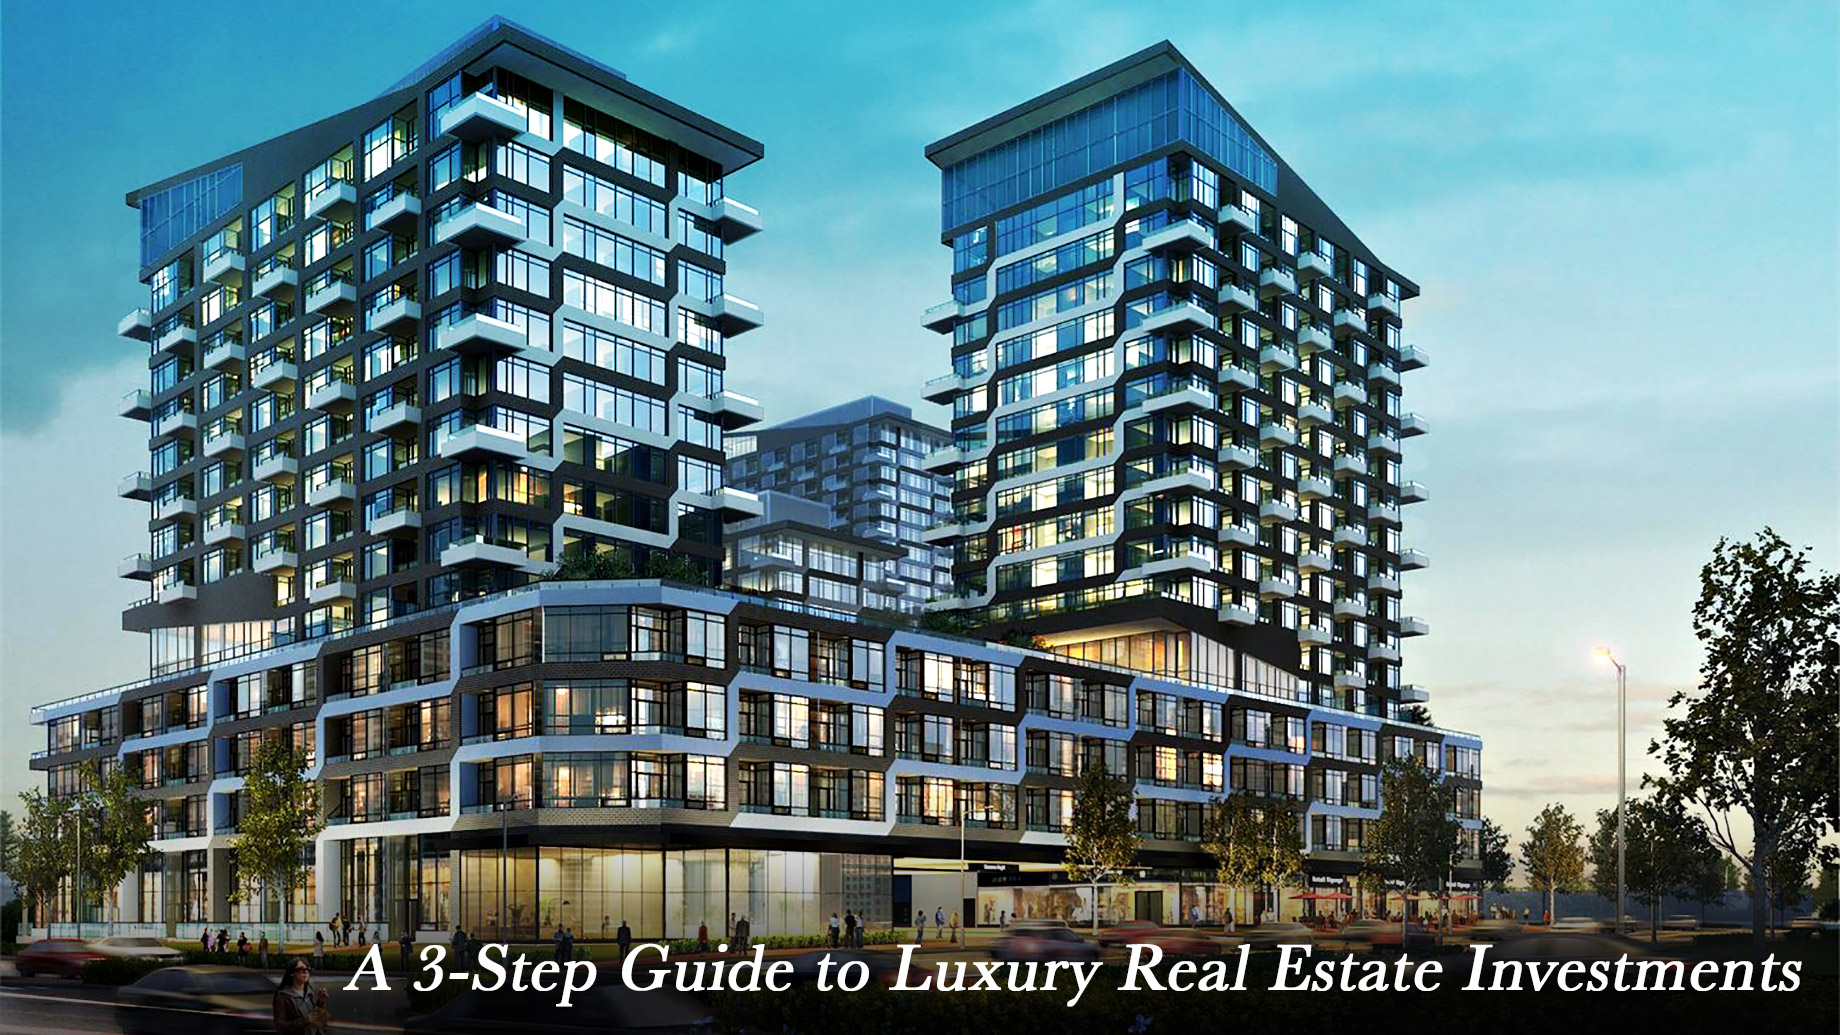 A 3-Step Guide to Luxury Real Estate Investments